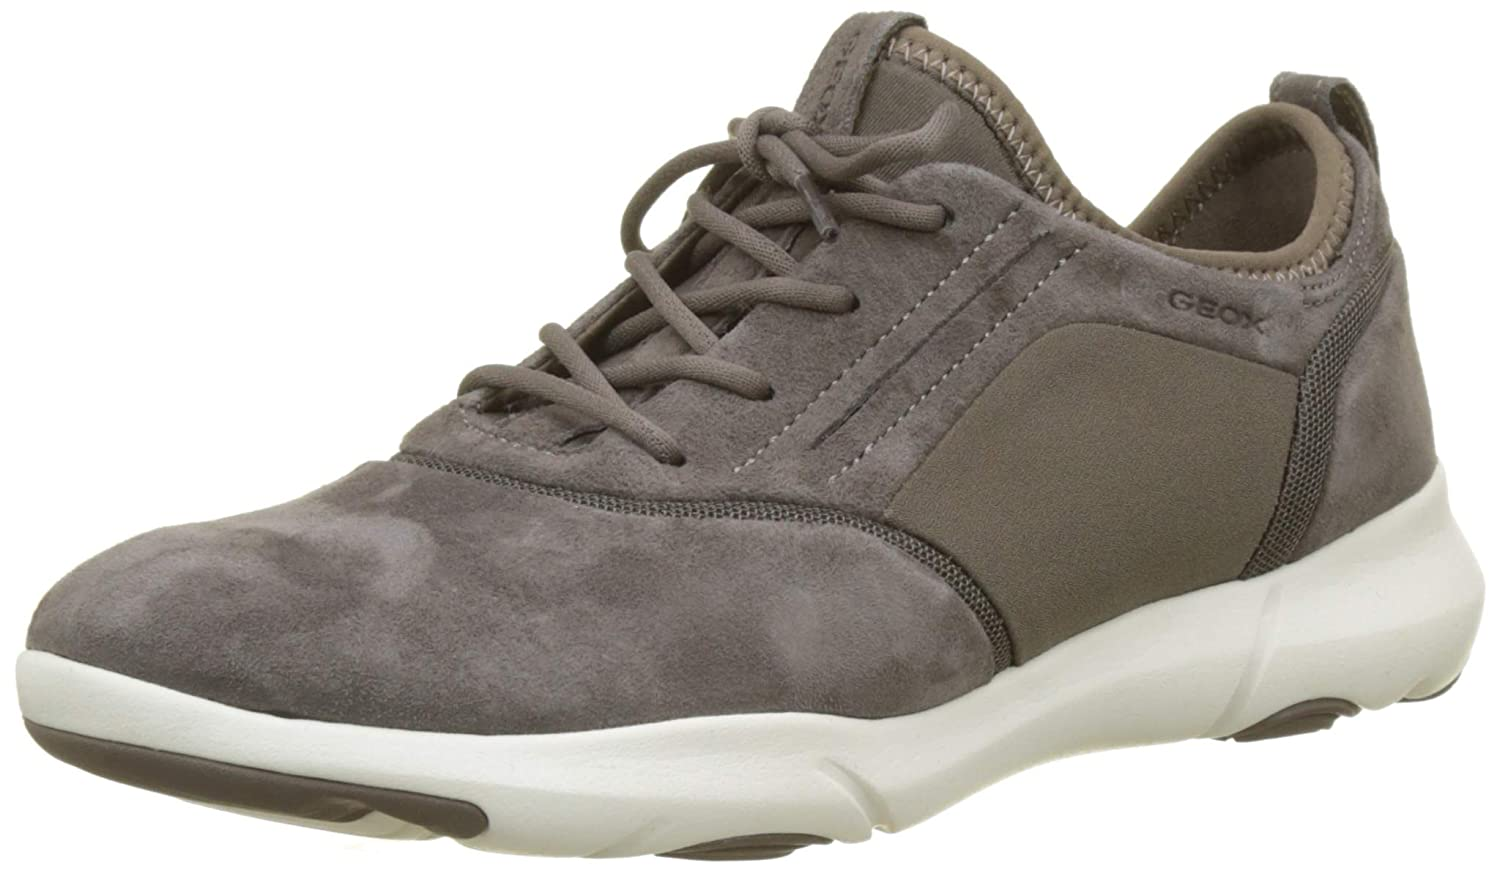 New Geox D Nebula S A Womens Shoes Casual Sneakers Casual | eBay